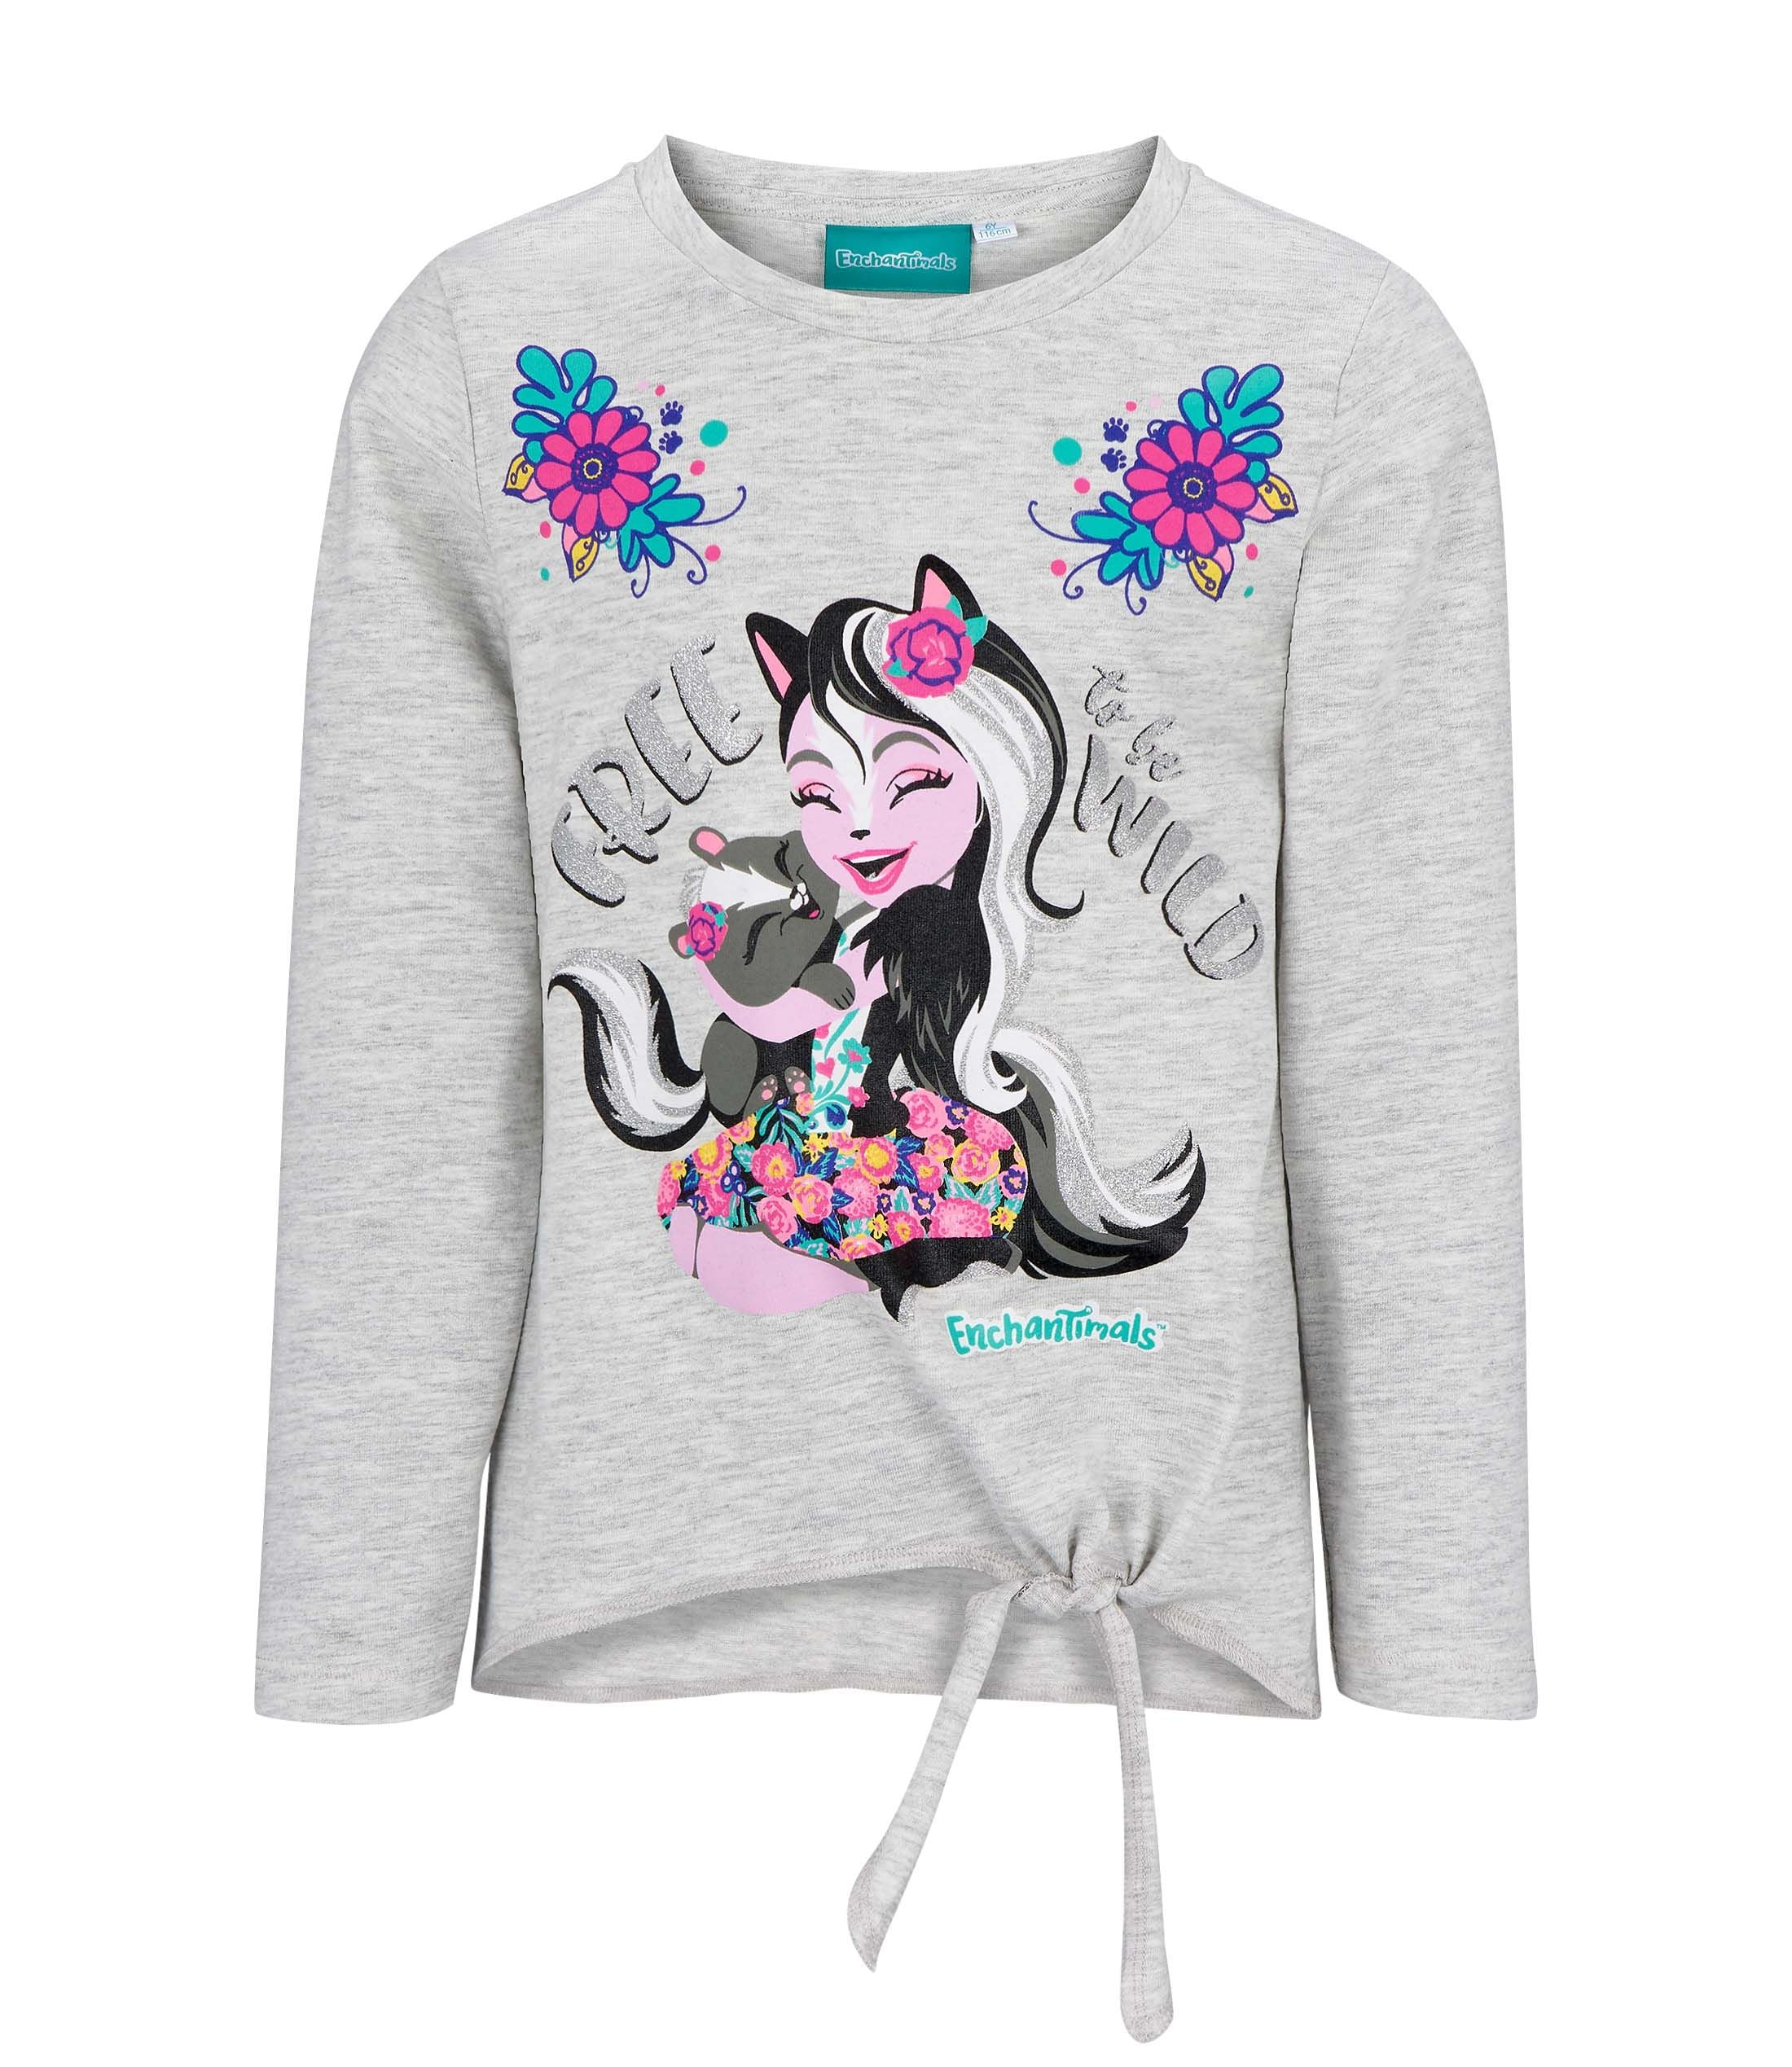 Enchantimals Girls Long Sleeve Cotton Rich Top T-Shirt 2-8 Years - Grey